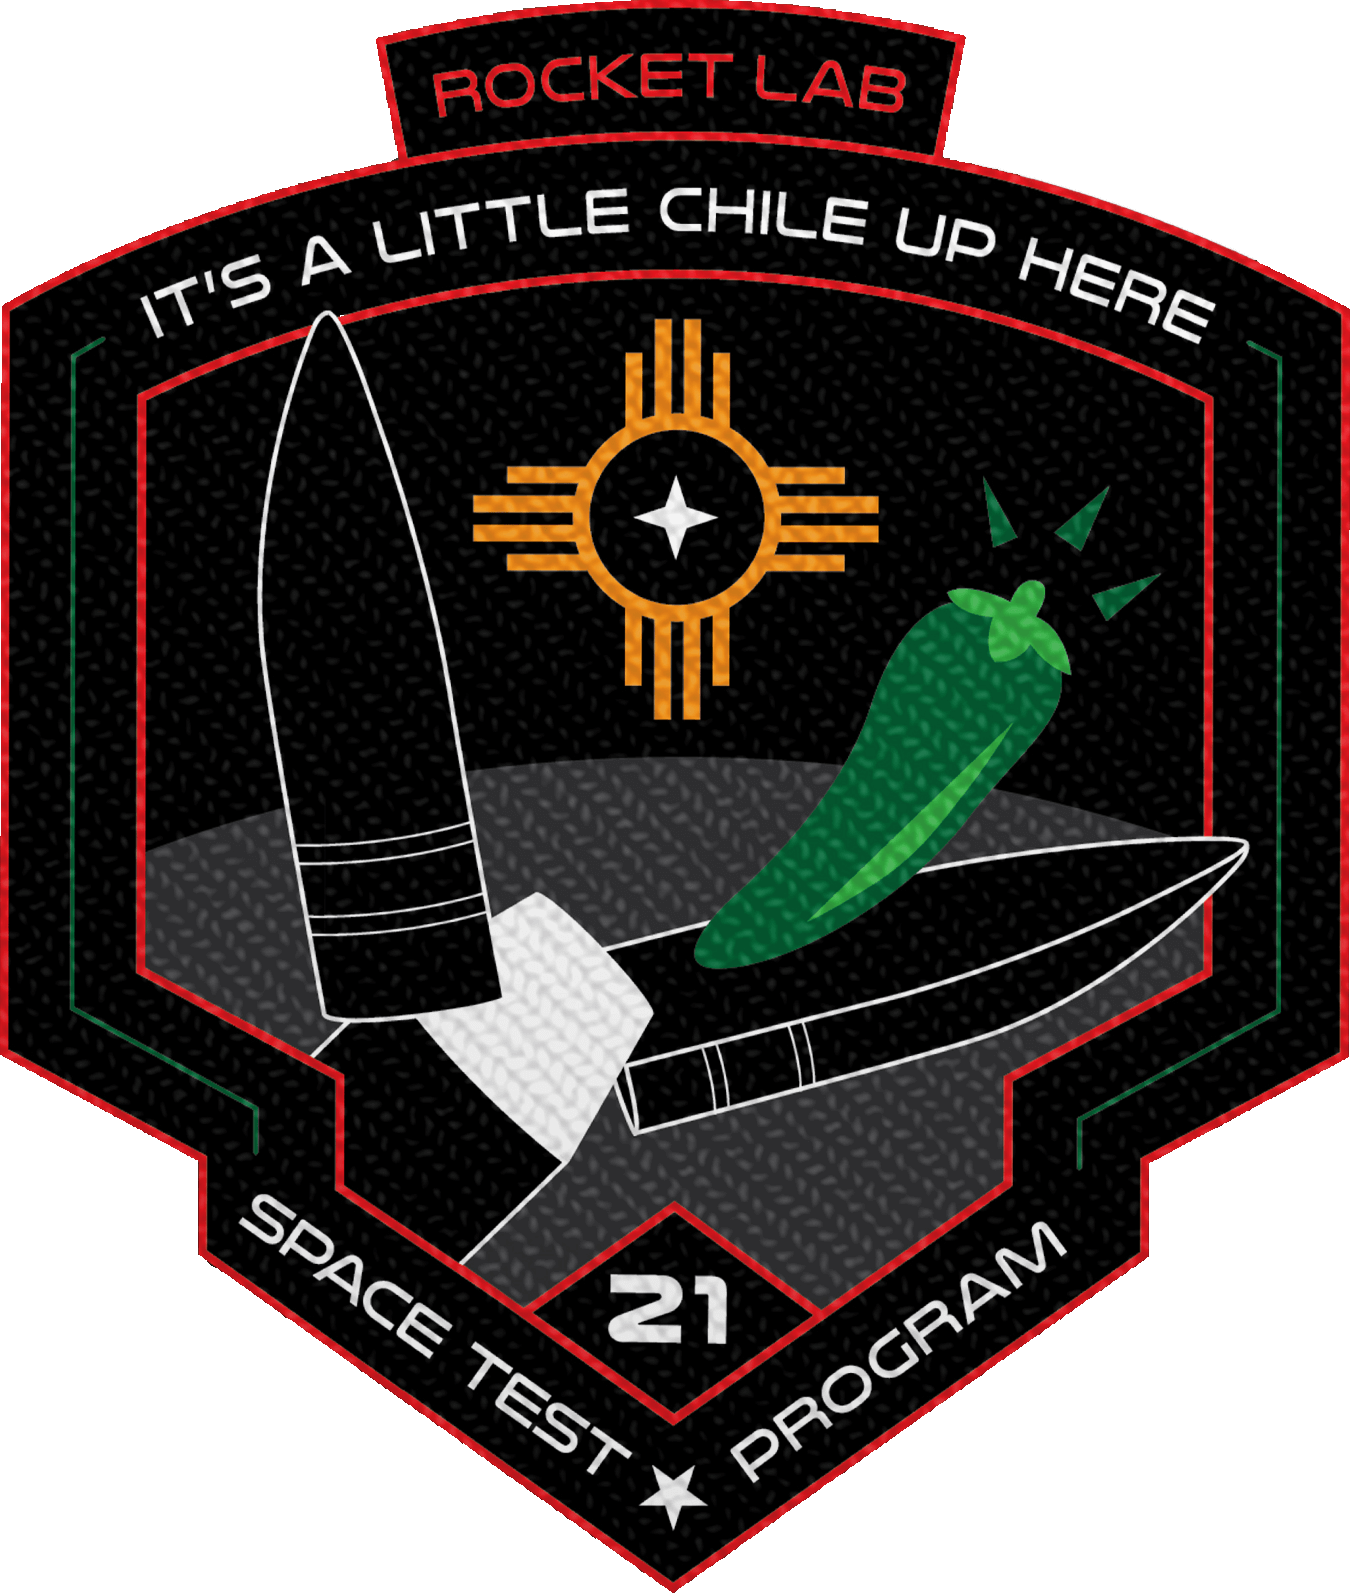 Mission patch for STP-27RM (It's a Little Chile Up Here)